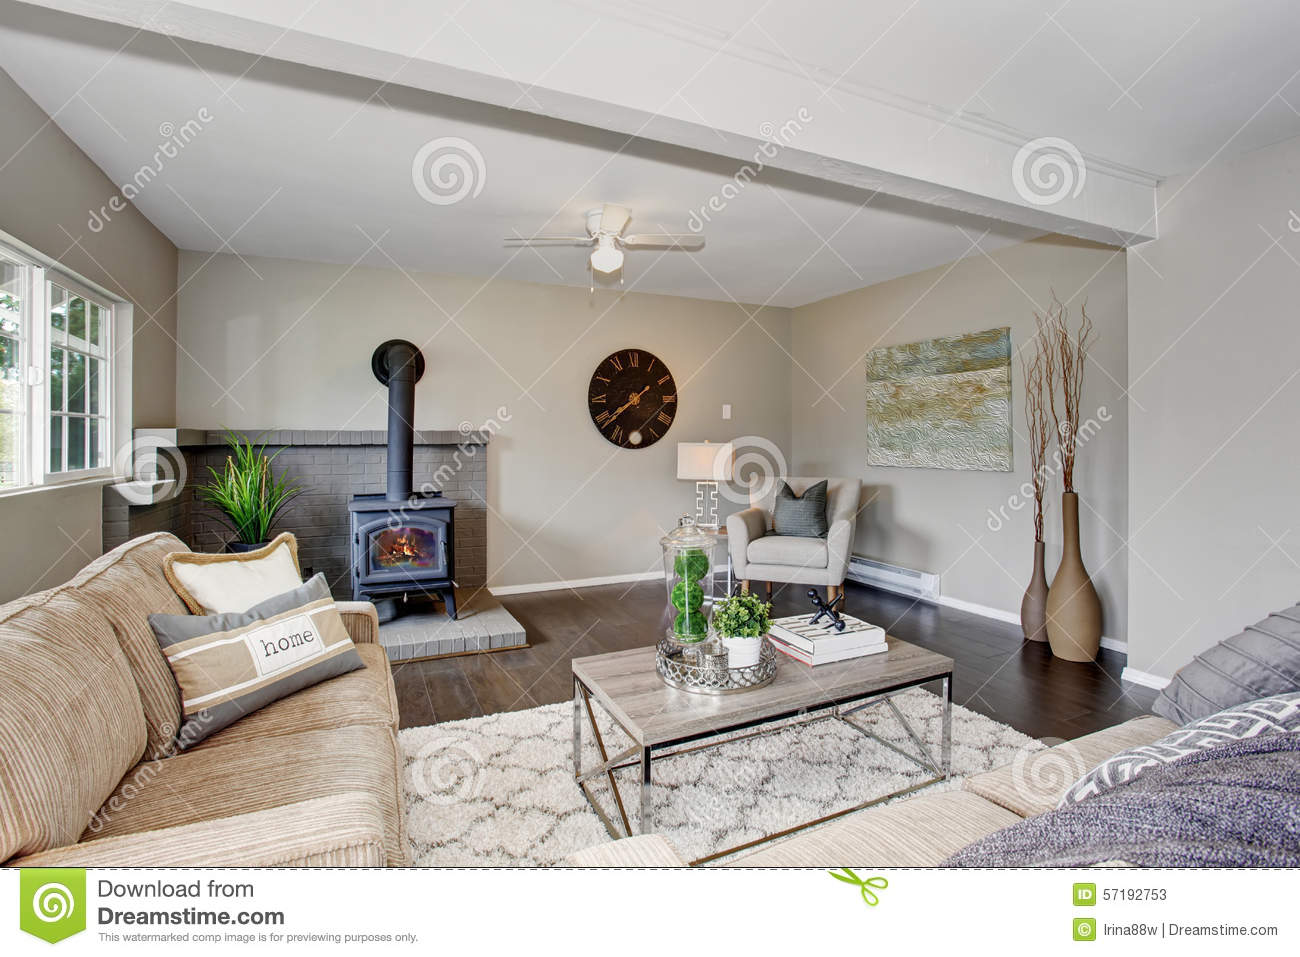 then shag stools furry for and white shaggy with garden together paint ing interior decor rugs console fluffy table rug as lamp ga wells in tu wood trendy gray cozzy color corner baseboard living ivory also room plus inside